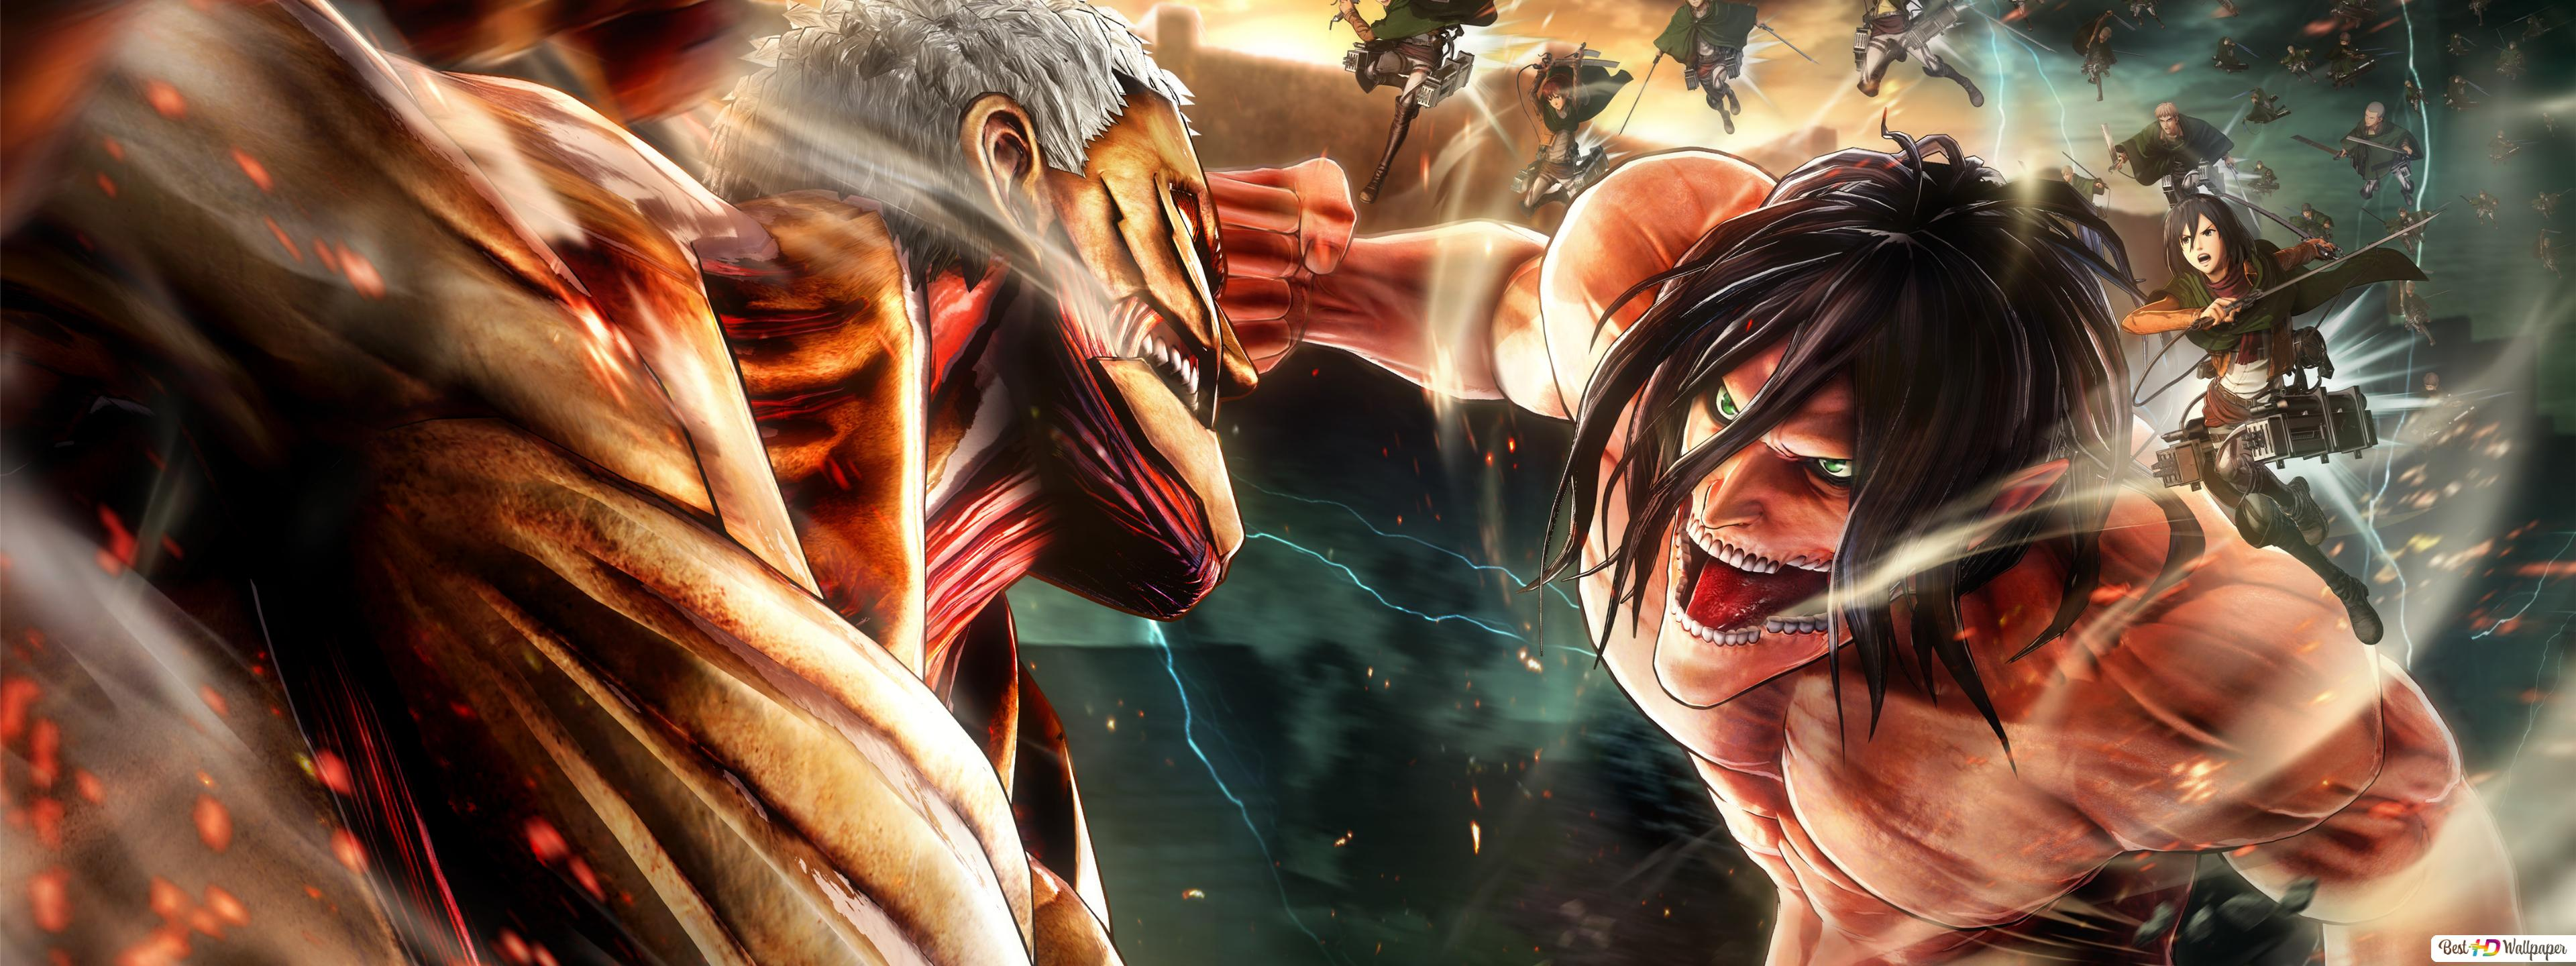 Attack On Titan 2 Video Game Hd Wallpaper Download